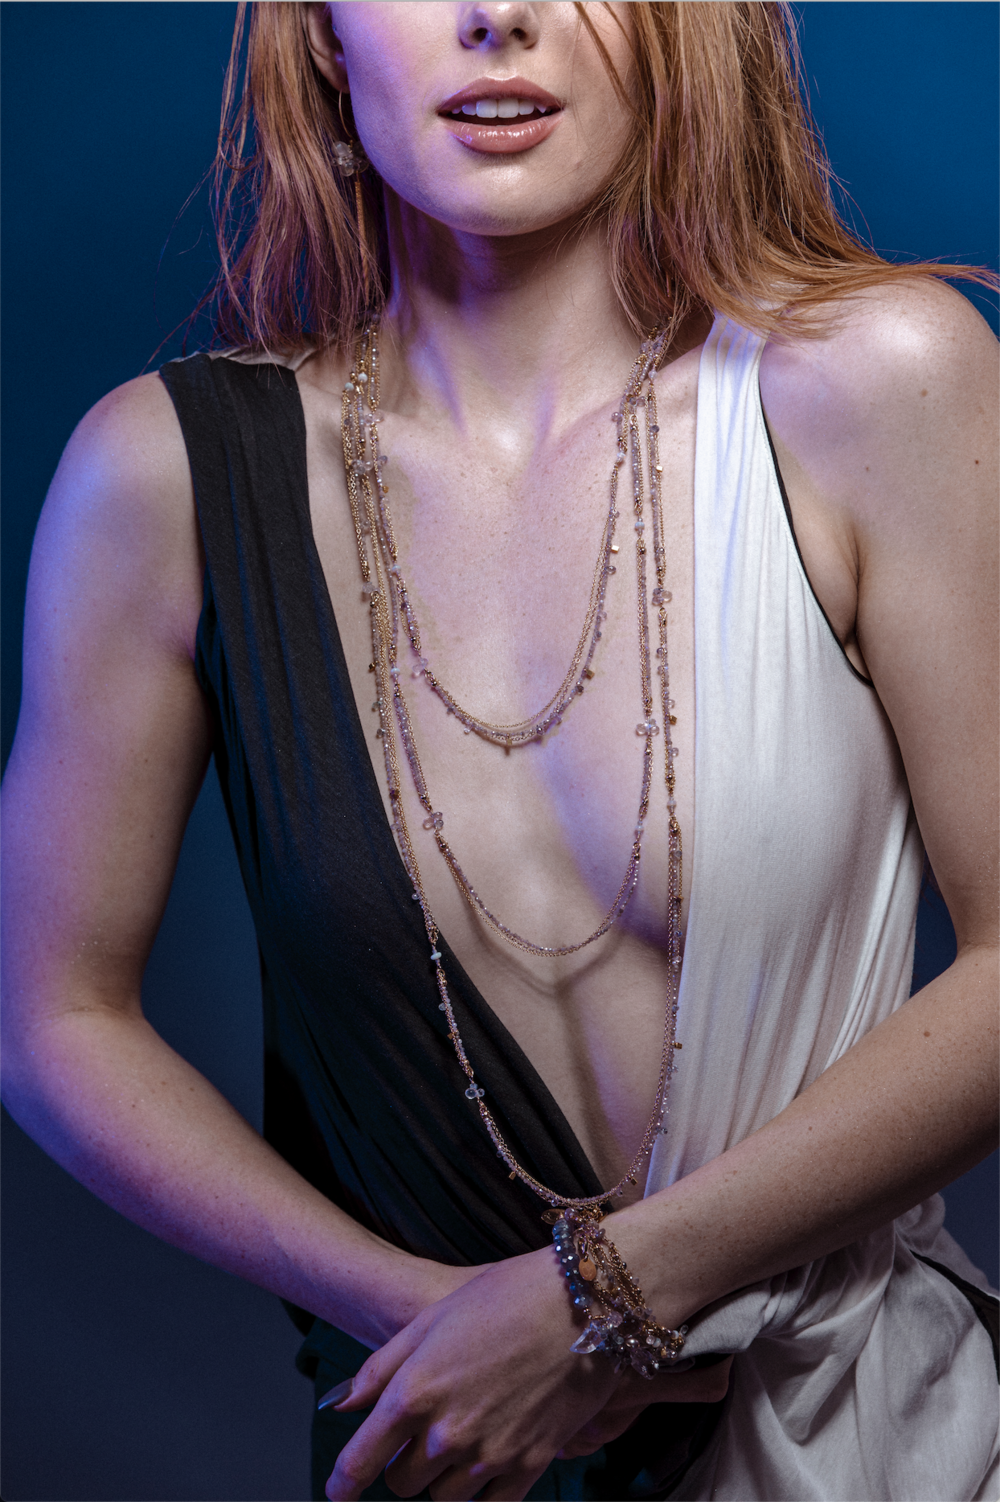 model wearing long layering necklaces